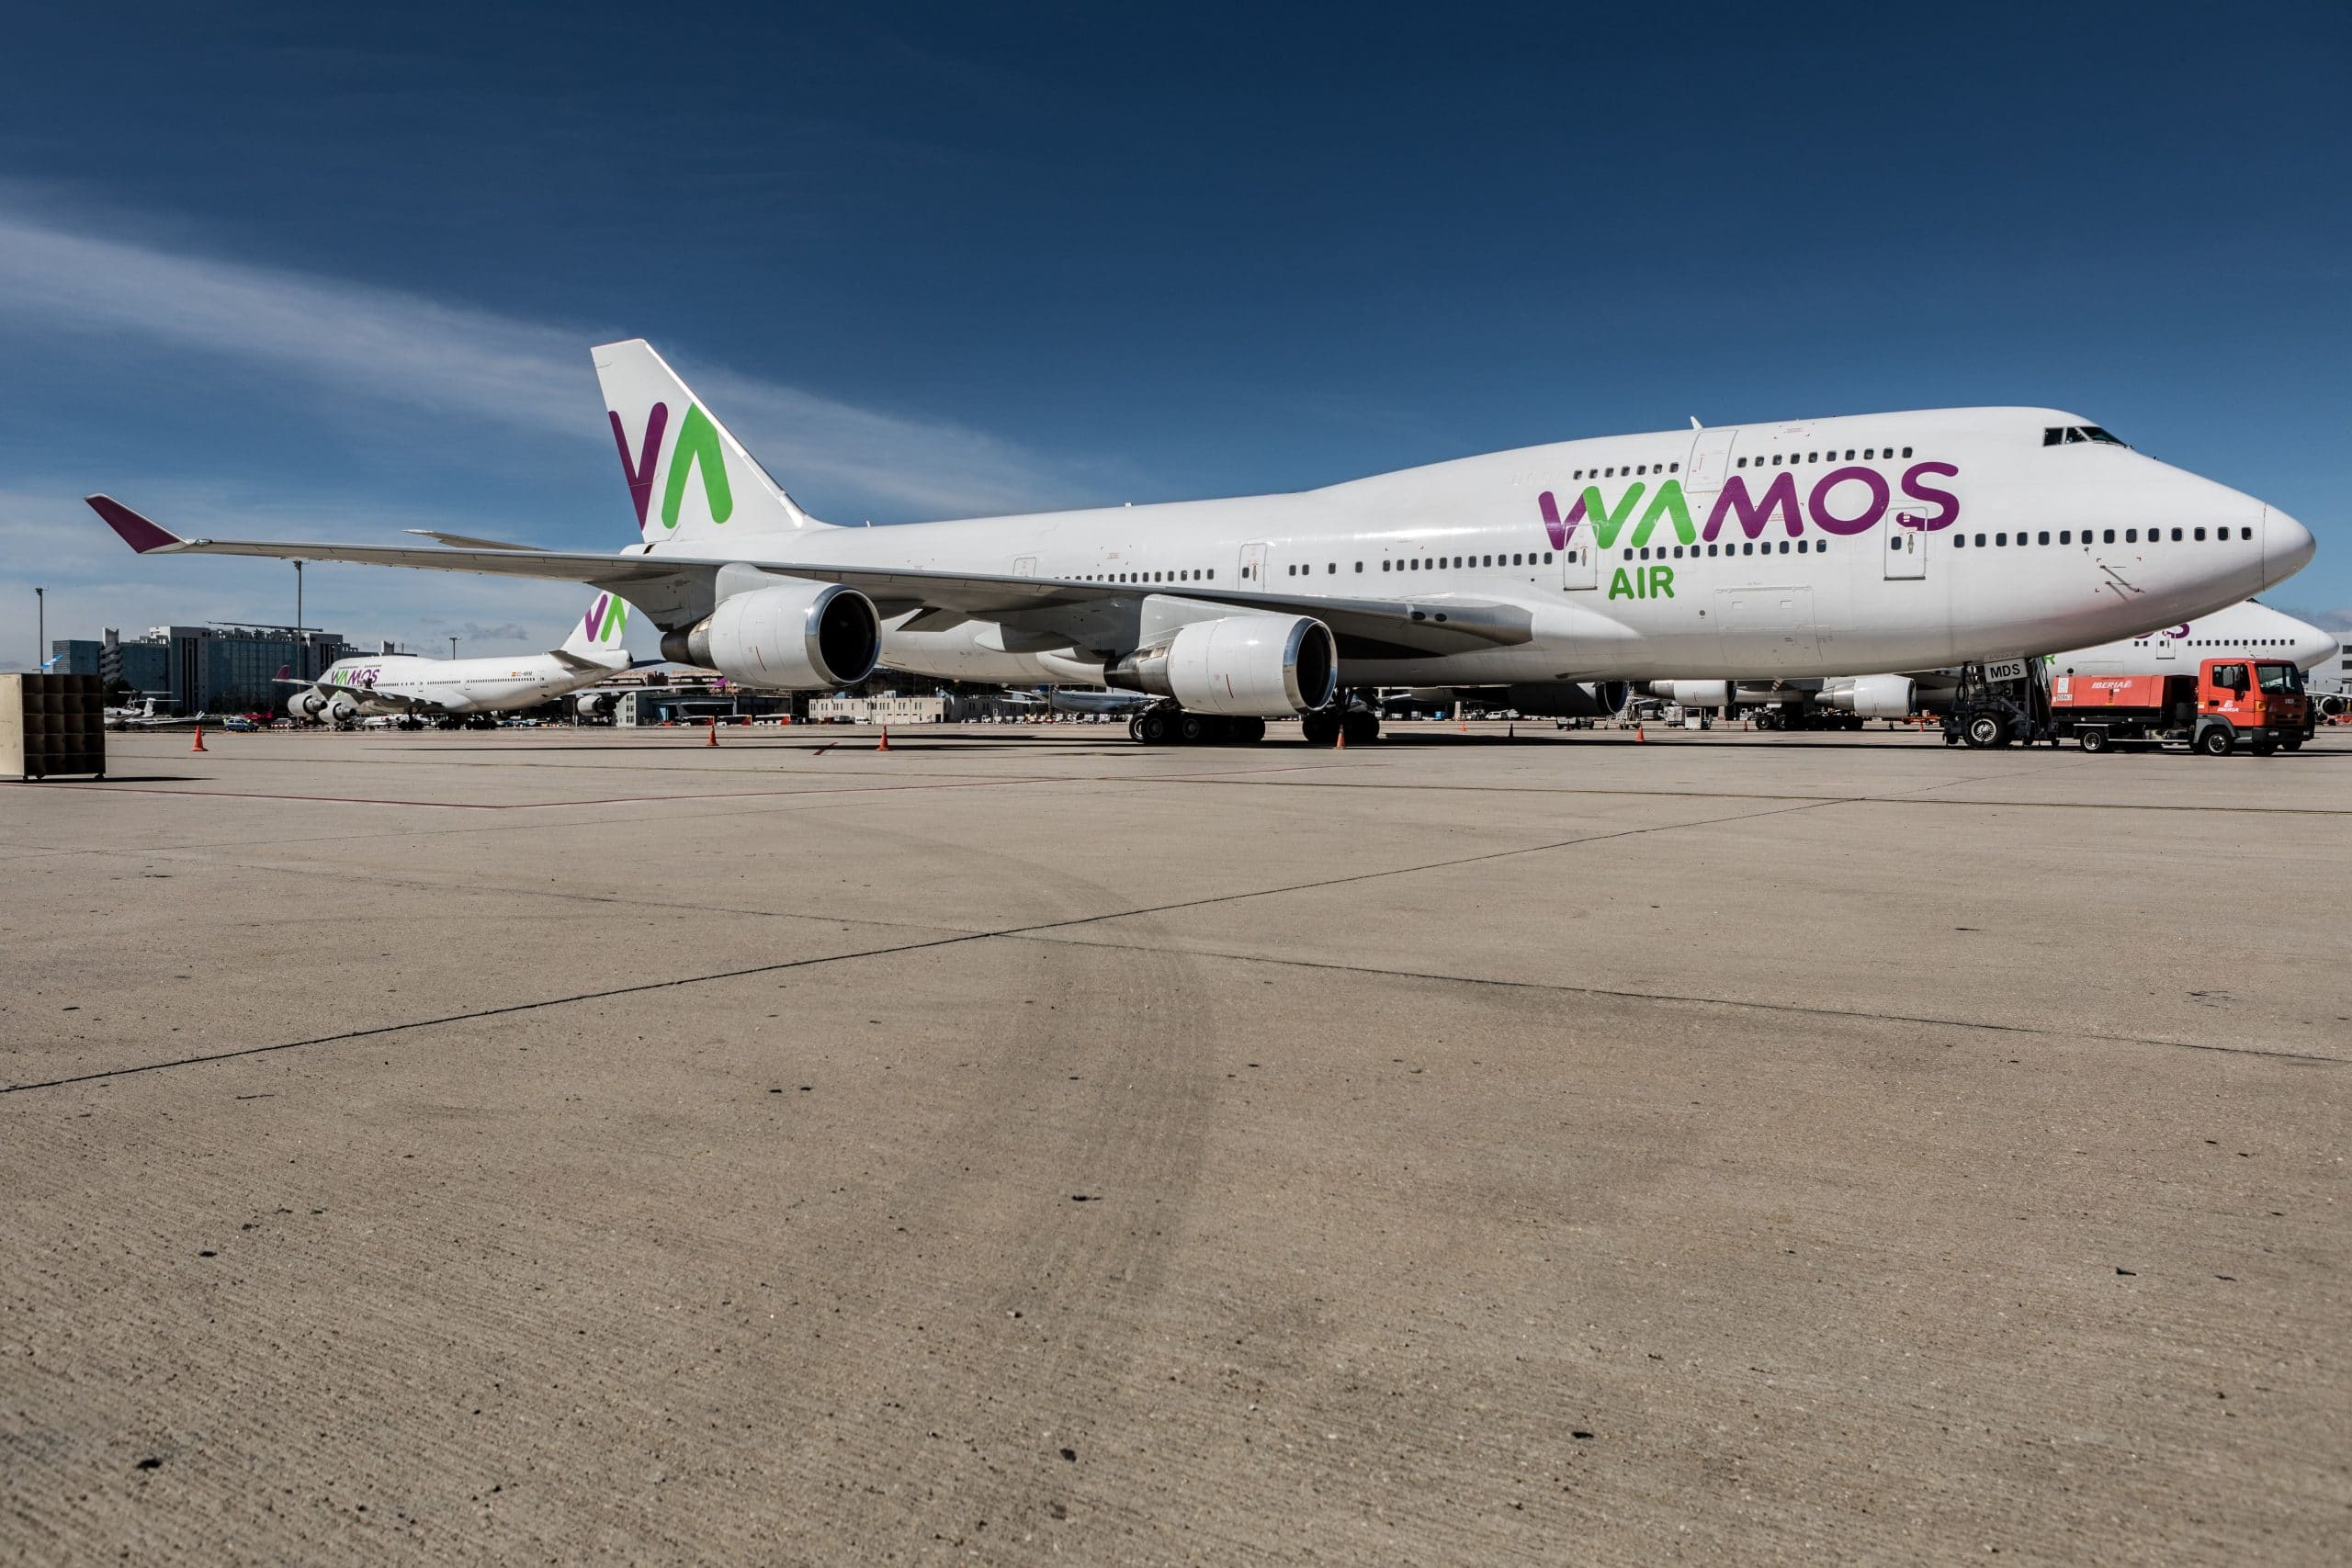 Transporte carga Wamos Air